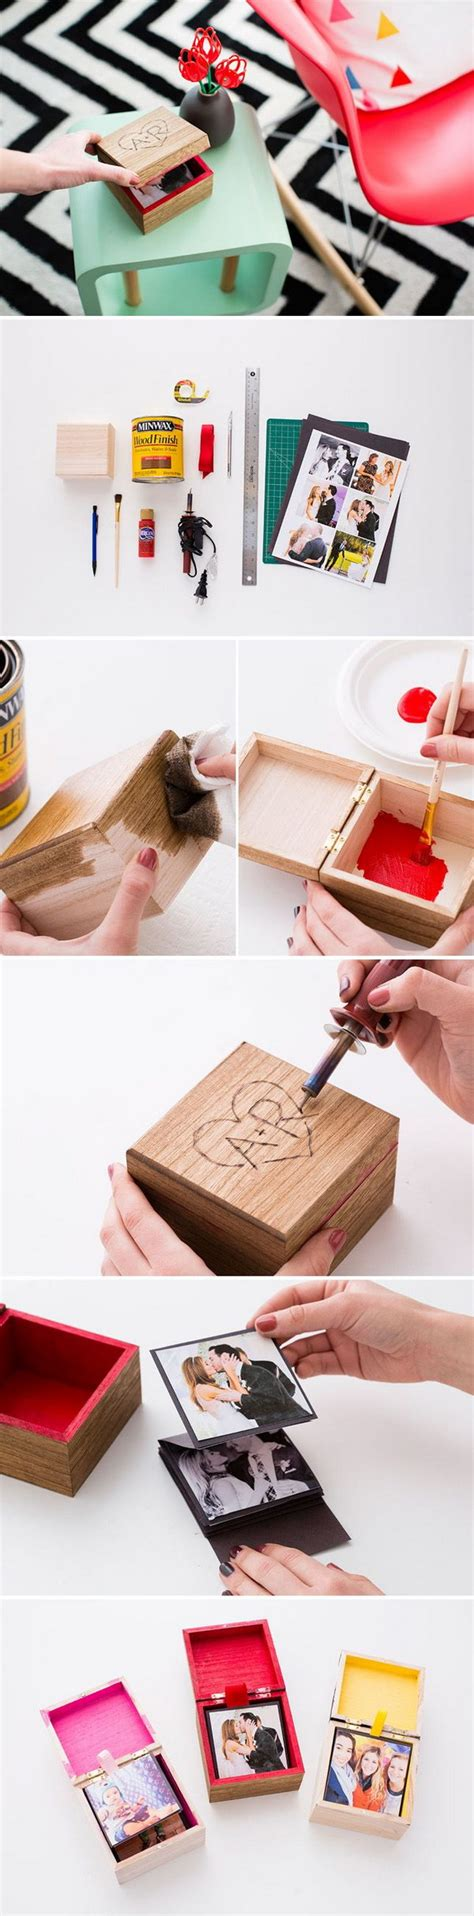 gift ideas for him diy 25 diy gifts for him with lots of tutorials 2017